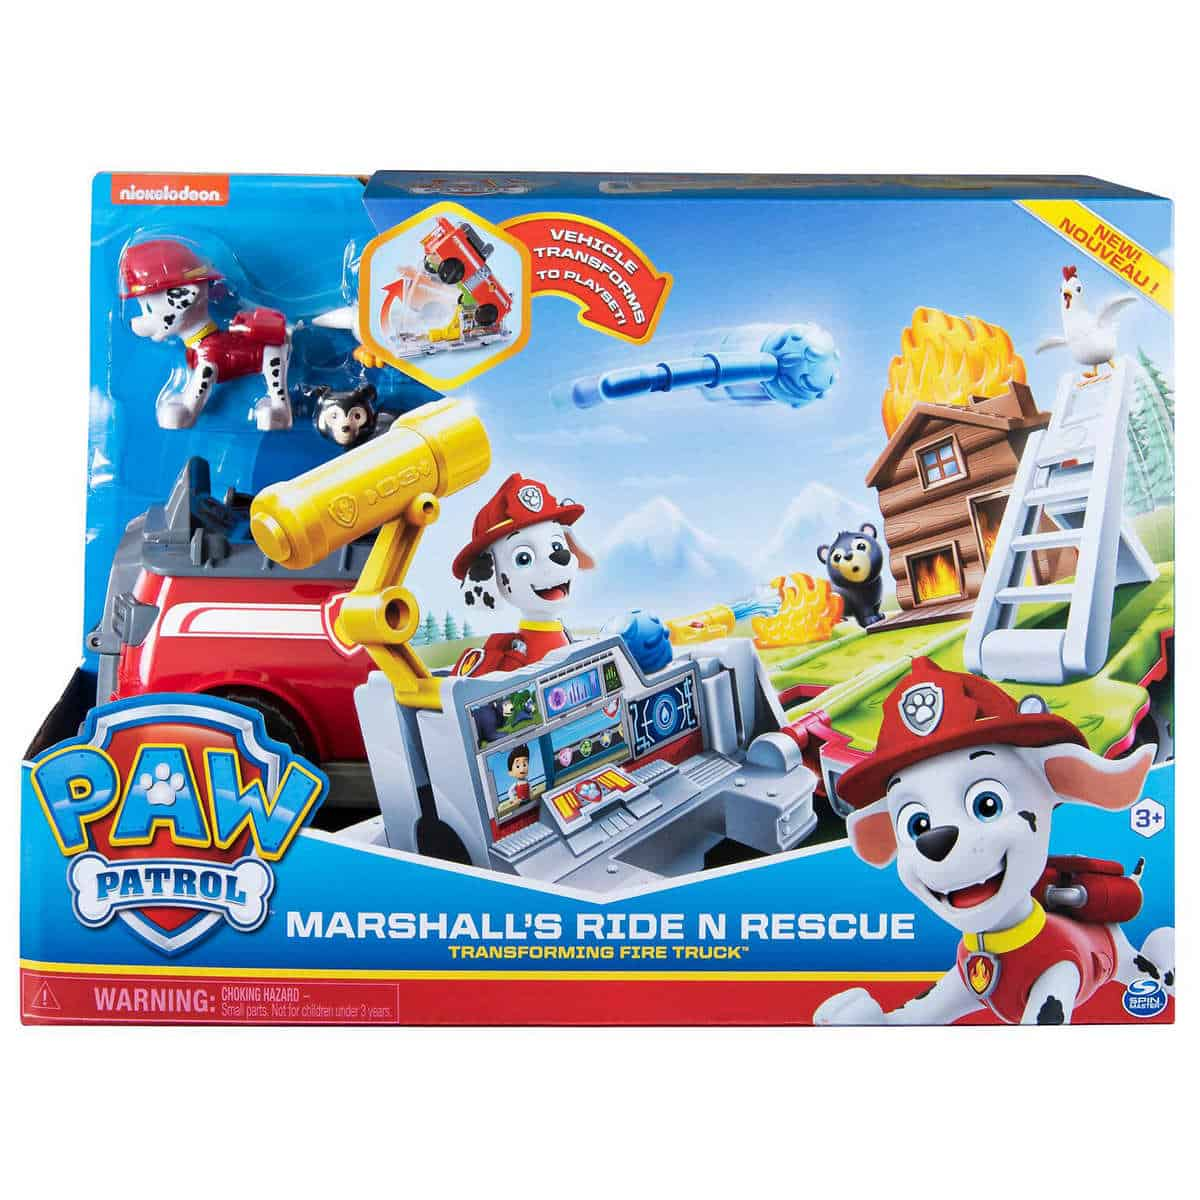 Grab Your Paw Patrol, Marshall's Ride 'n' Rescue, Transforming 2-in-1 Playset and Fire Truck or ONLY $9.97 at Costco.com